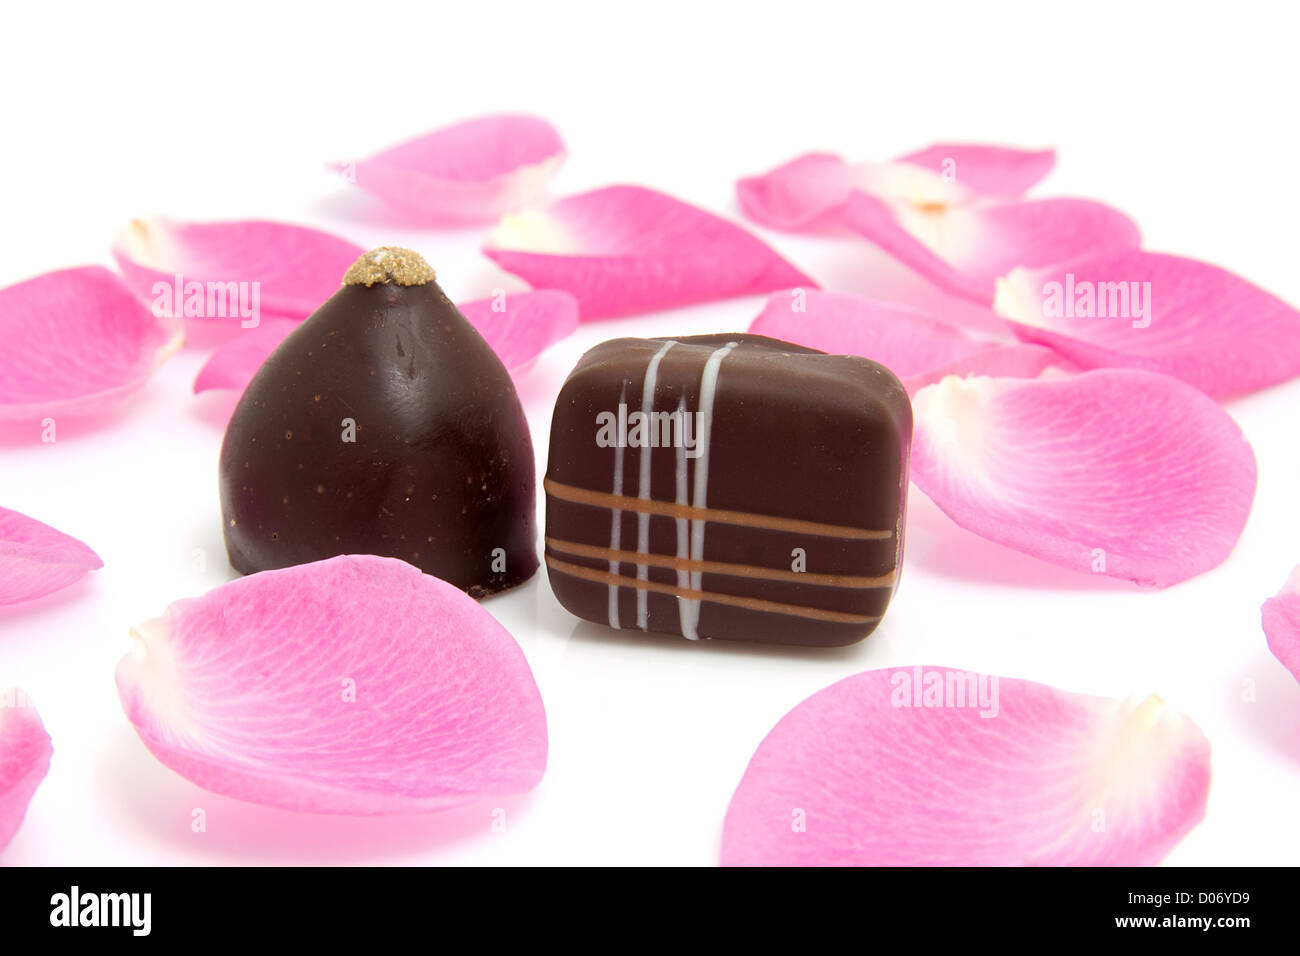 pink rose leaves with chocolate bonbons for Valentine's day over white background - Stock Image